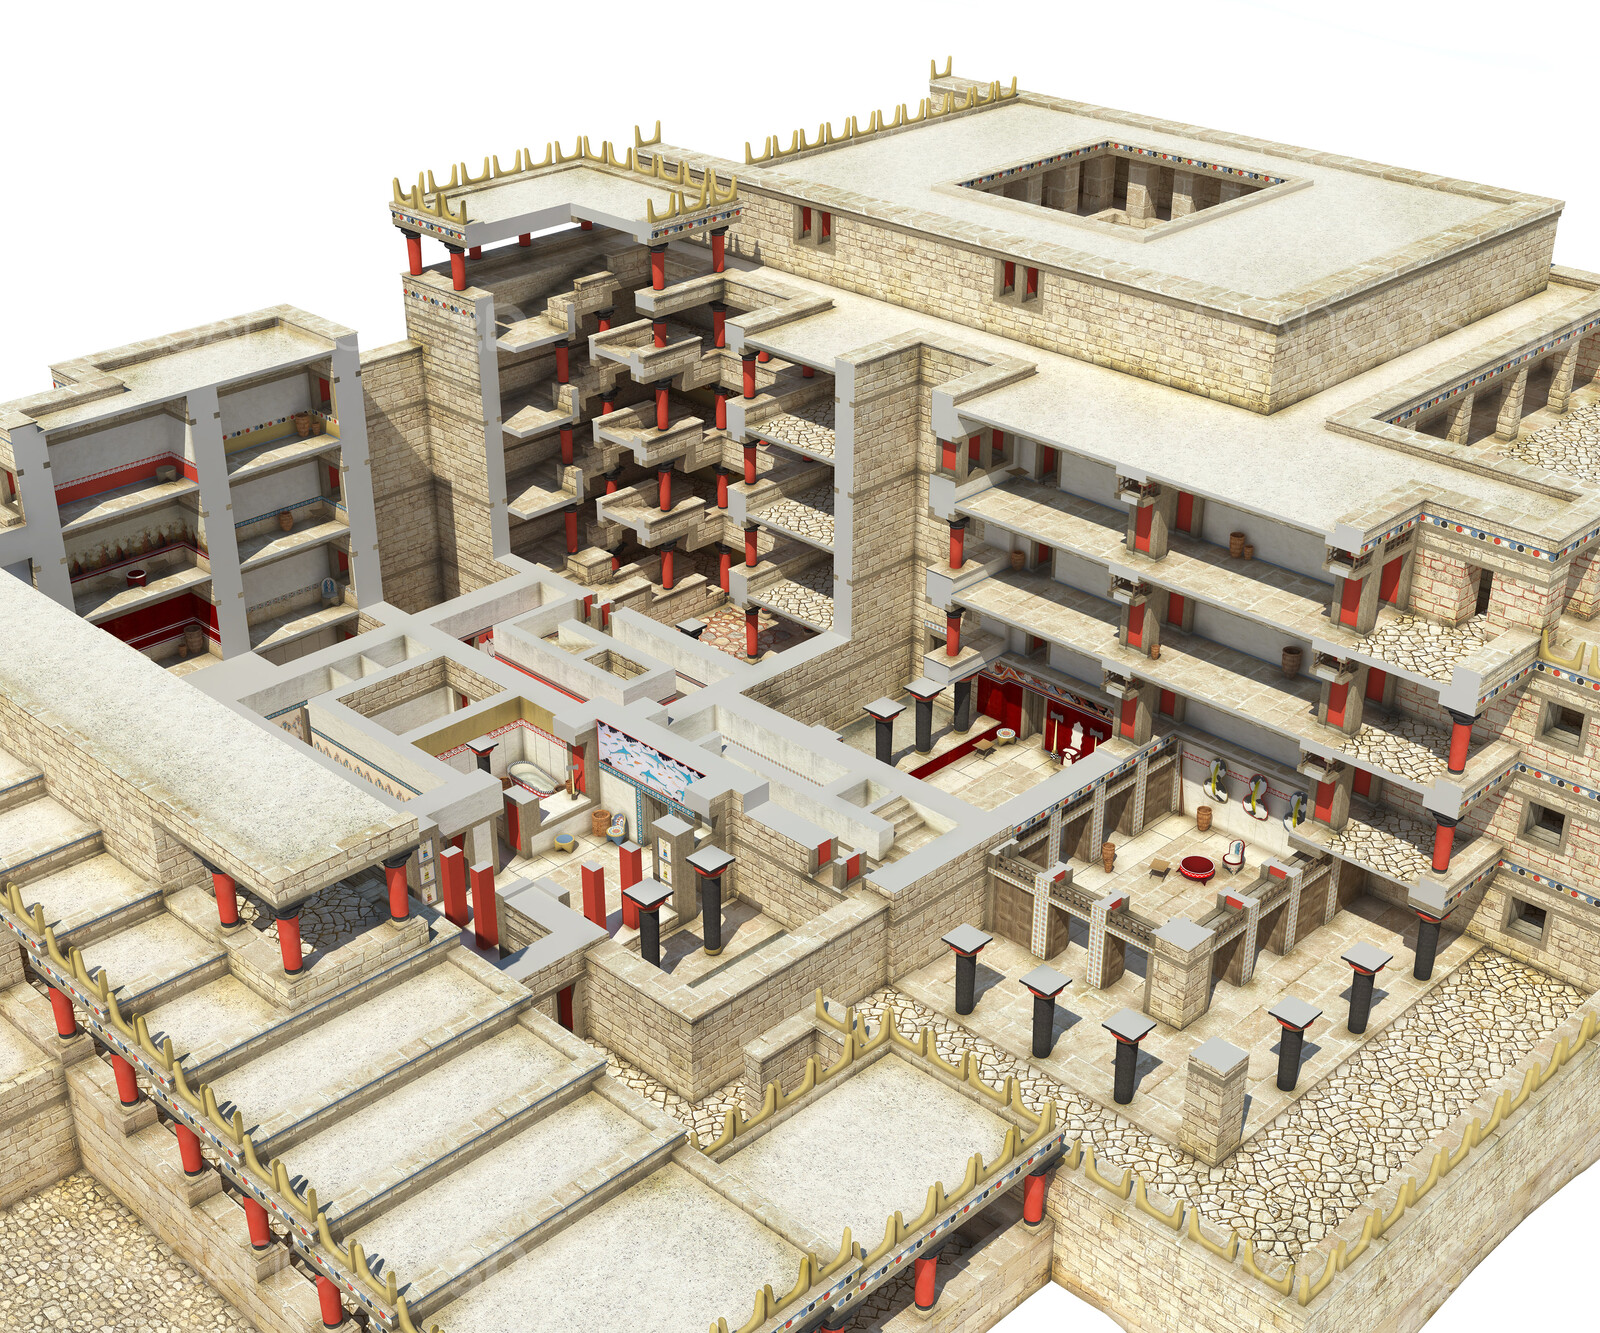 Cut away showing the interior of the royal residential area and the Big Staircase in the Palace of Cnossos. Modeled in collaboration with: - Alejandro Soriano